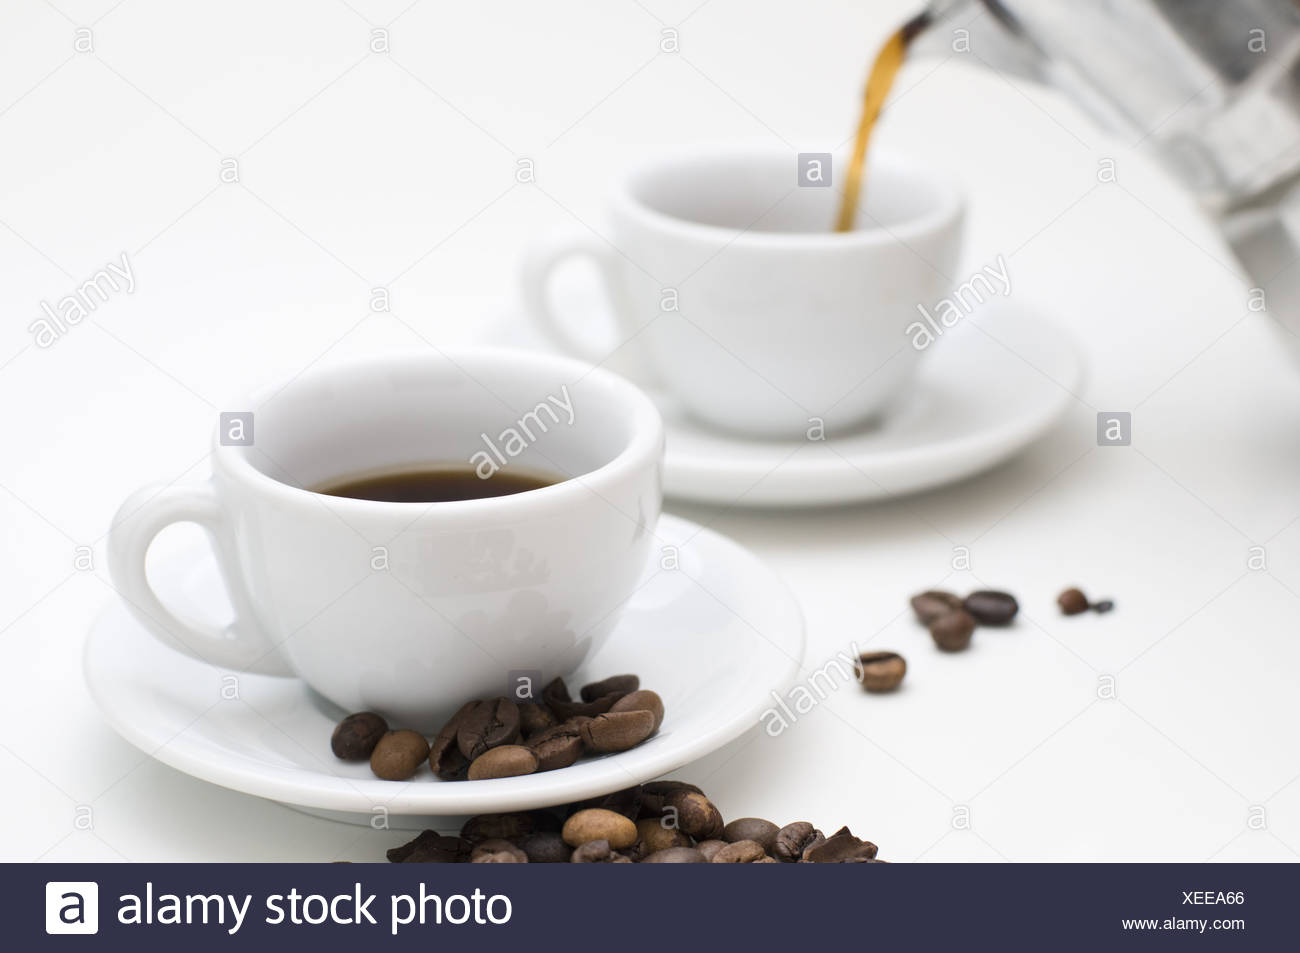 delicious espresso - Stock Image